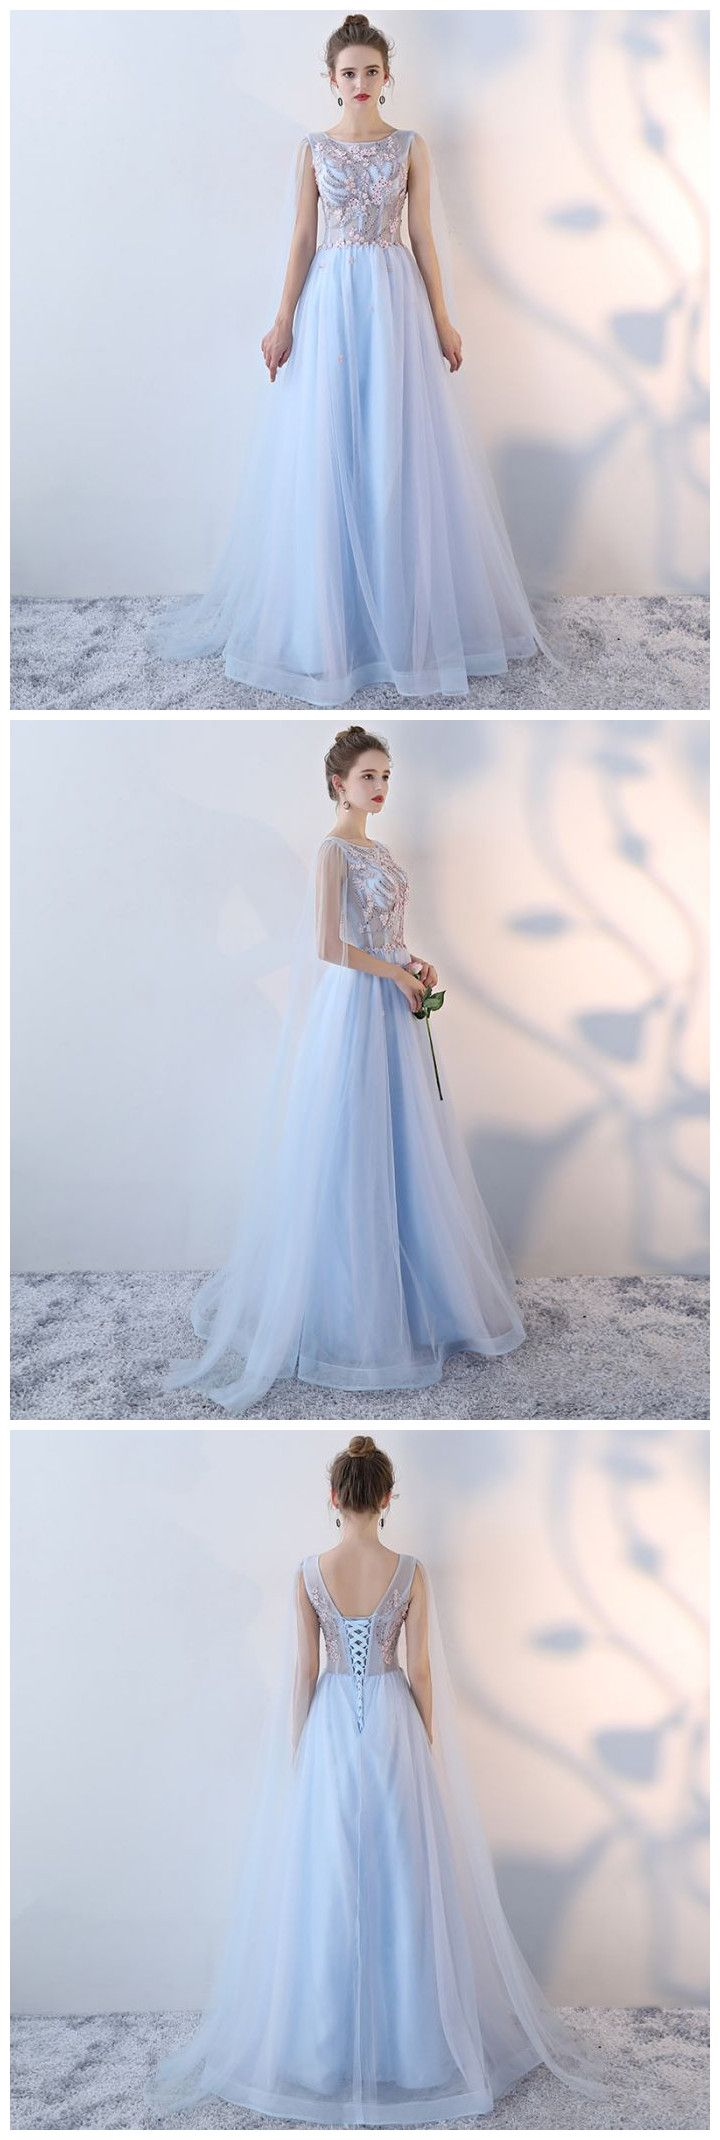 CHIC A-LINE SCOOP TULLE BLUE MODEST APPLQIUE LONG PROM DRESS EVENING DRESS AM888 #amyprom #fashion #party #evening #chic #promdress #promdresslong #longpromdress #eveningdress #formaldress #blue